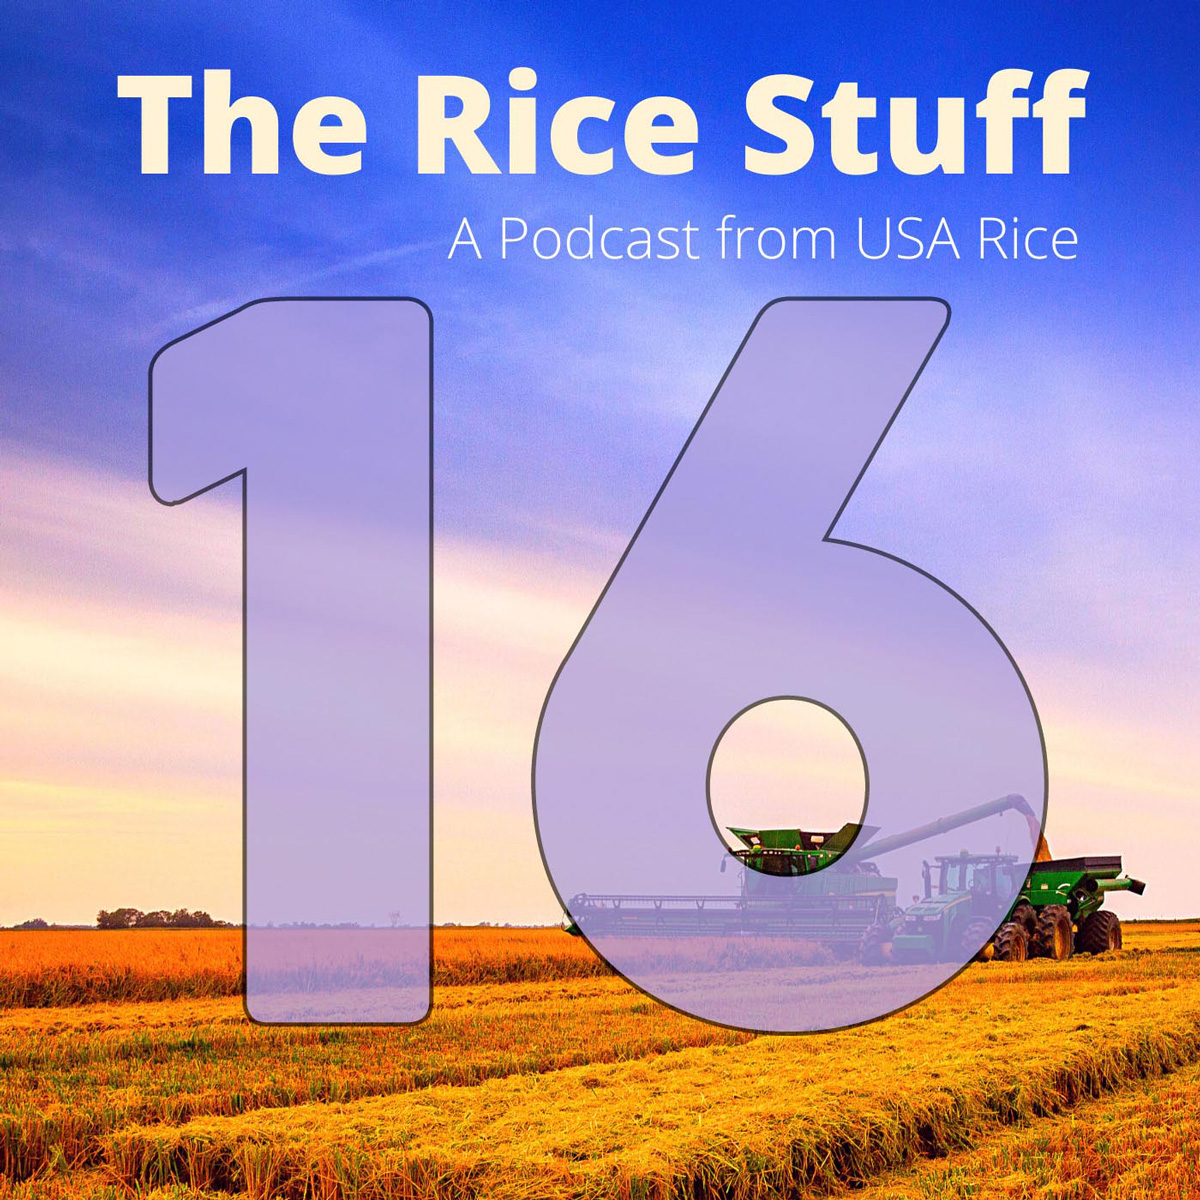 Number 16 superimposed over photo of combine and grain cart in mature rice field